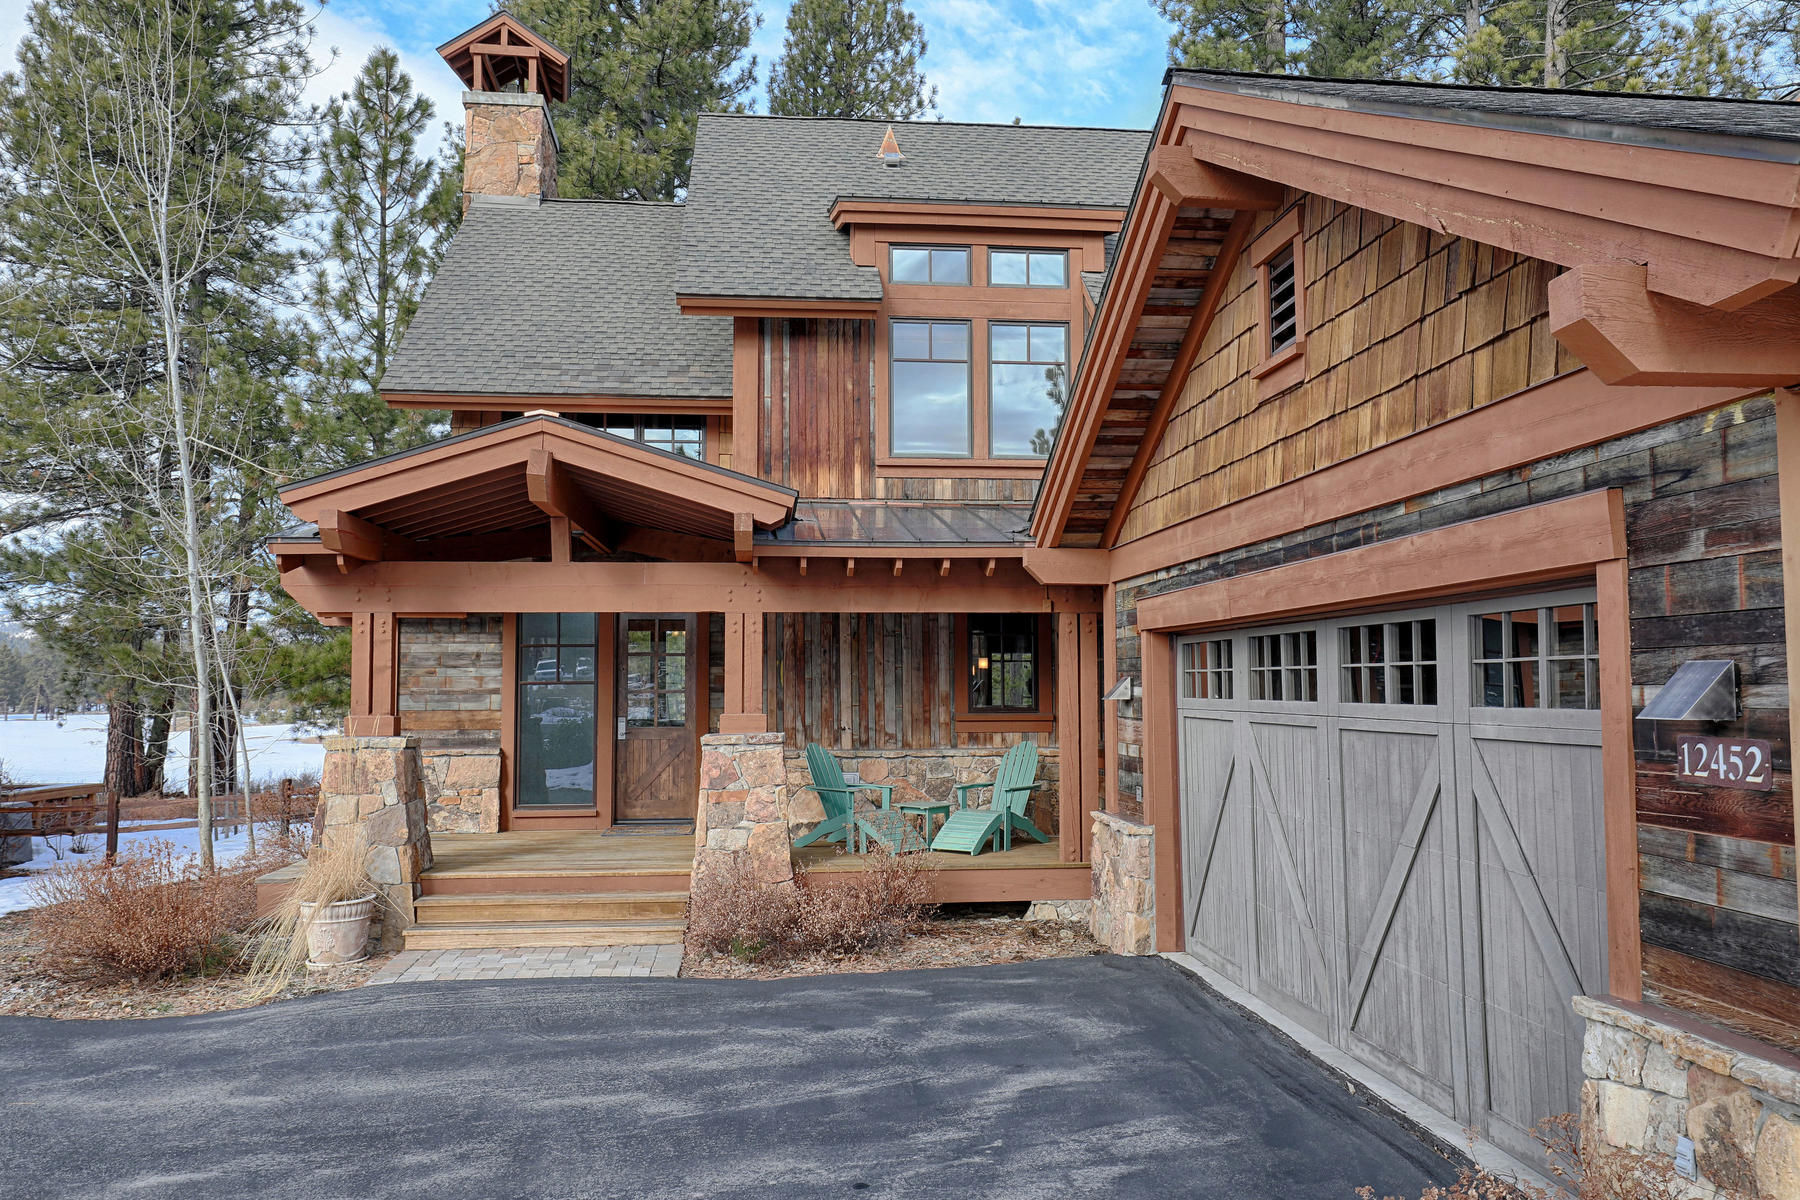 Additional photo for property listing at 12452 Villa Court Truckee CA 96161 12452 Villa Court # 5 Truckee, California 96161 Estados Unidos